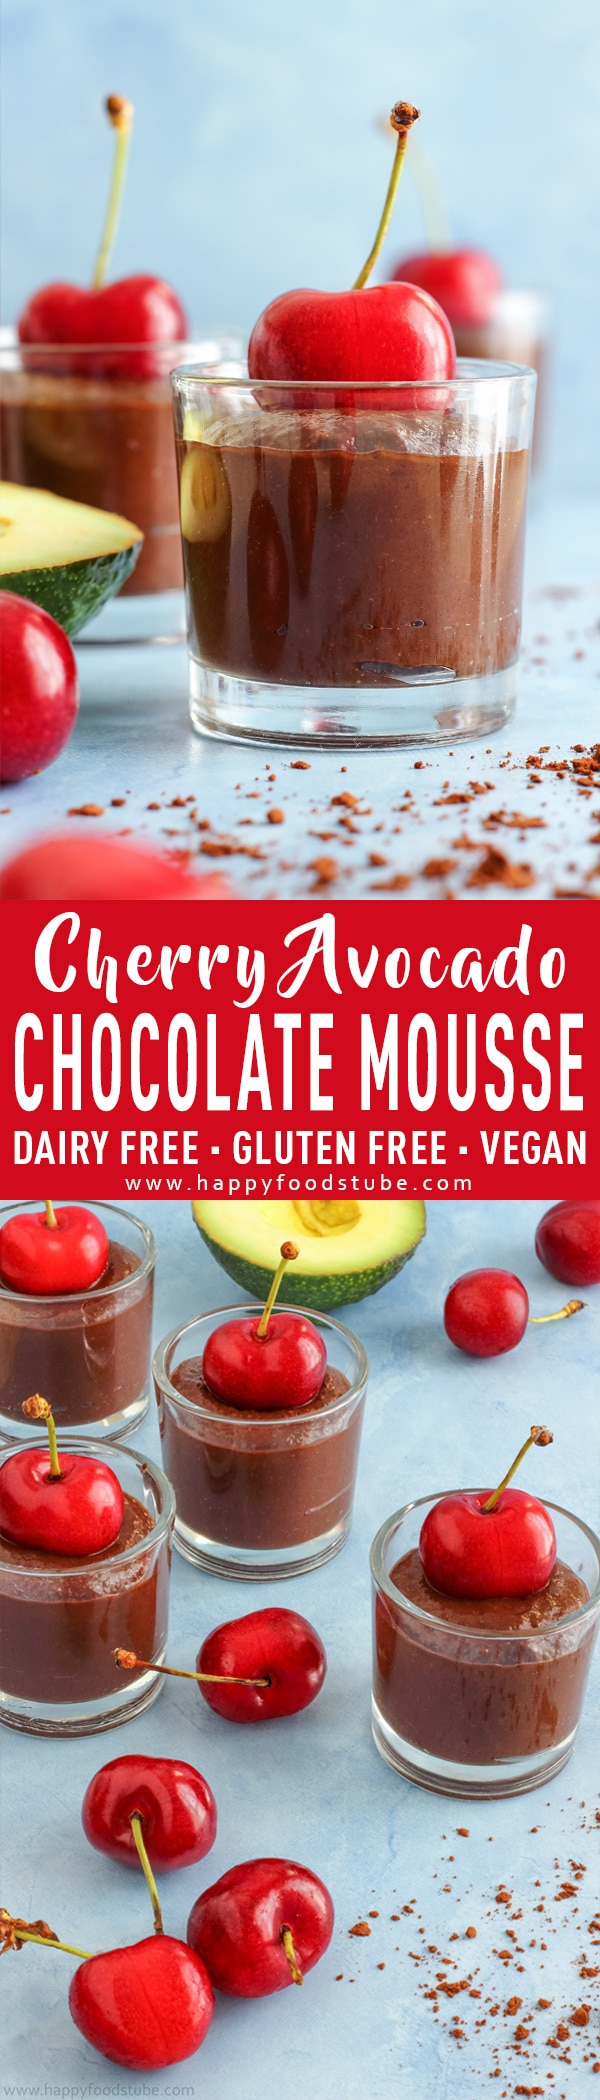 Cherry Avocado Chocolate Mousse is great all-natural sugar dessert. Imagine rich chocolate-y flavor, creamy avocado texture and sweetness from cherries and dates. This avocado chocolate mousse recipe is also dairy-free, gluten free and vegan